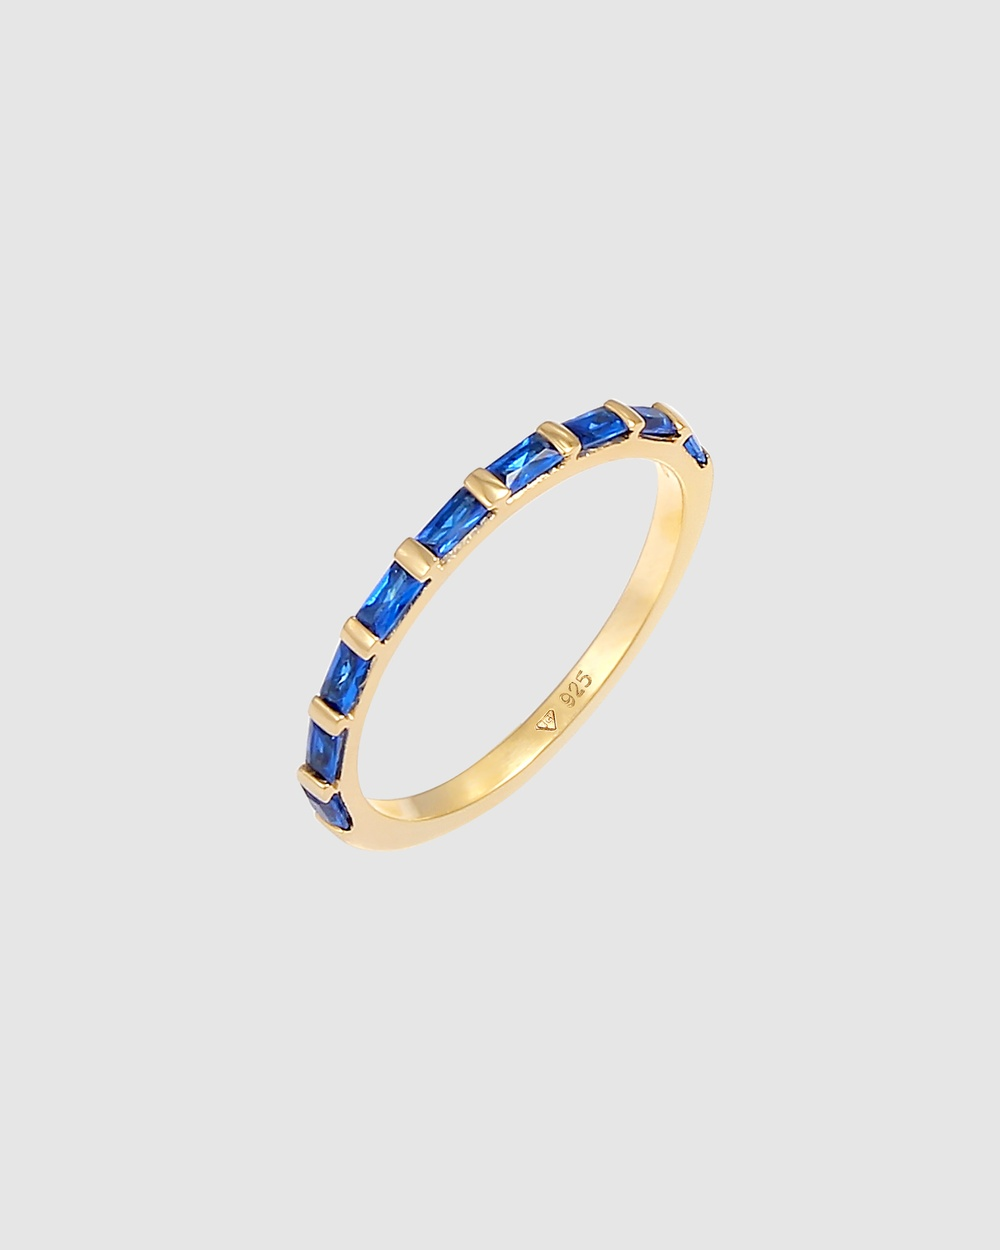 Elli Jewelry Ring Band Sparkling with Synthetic Sapphires in 925 Sterling Silver Gold Plated Novelty Gifts blue